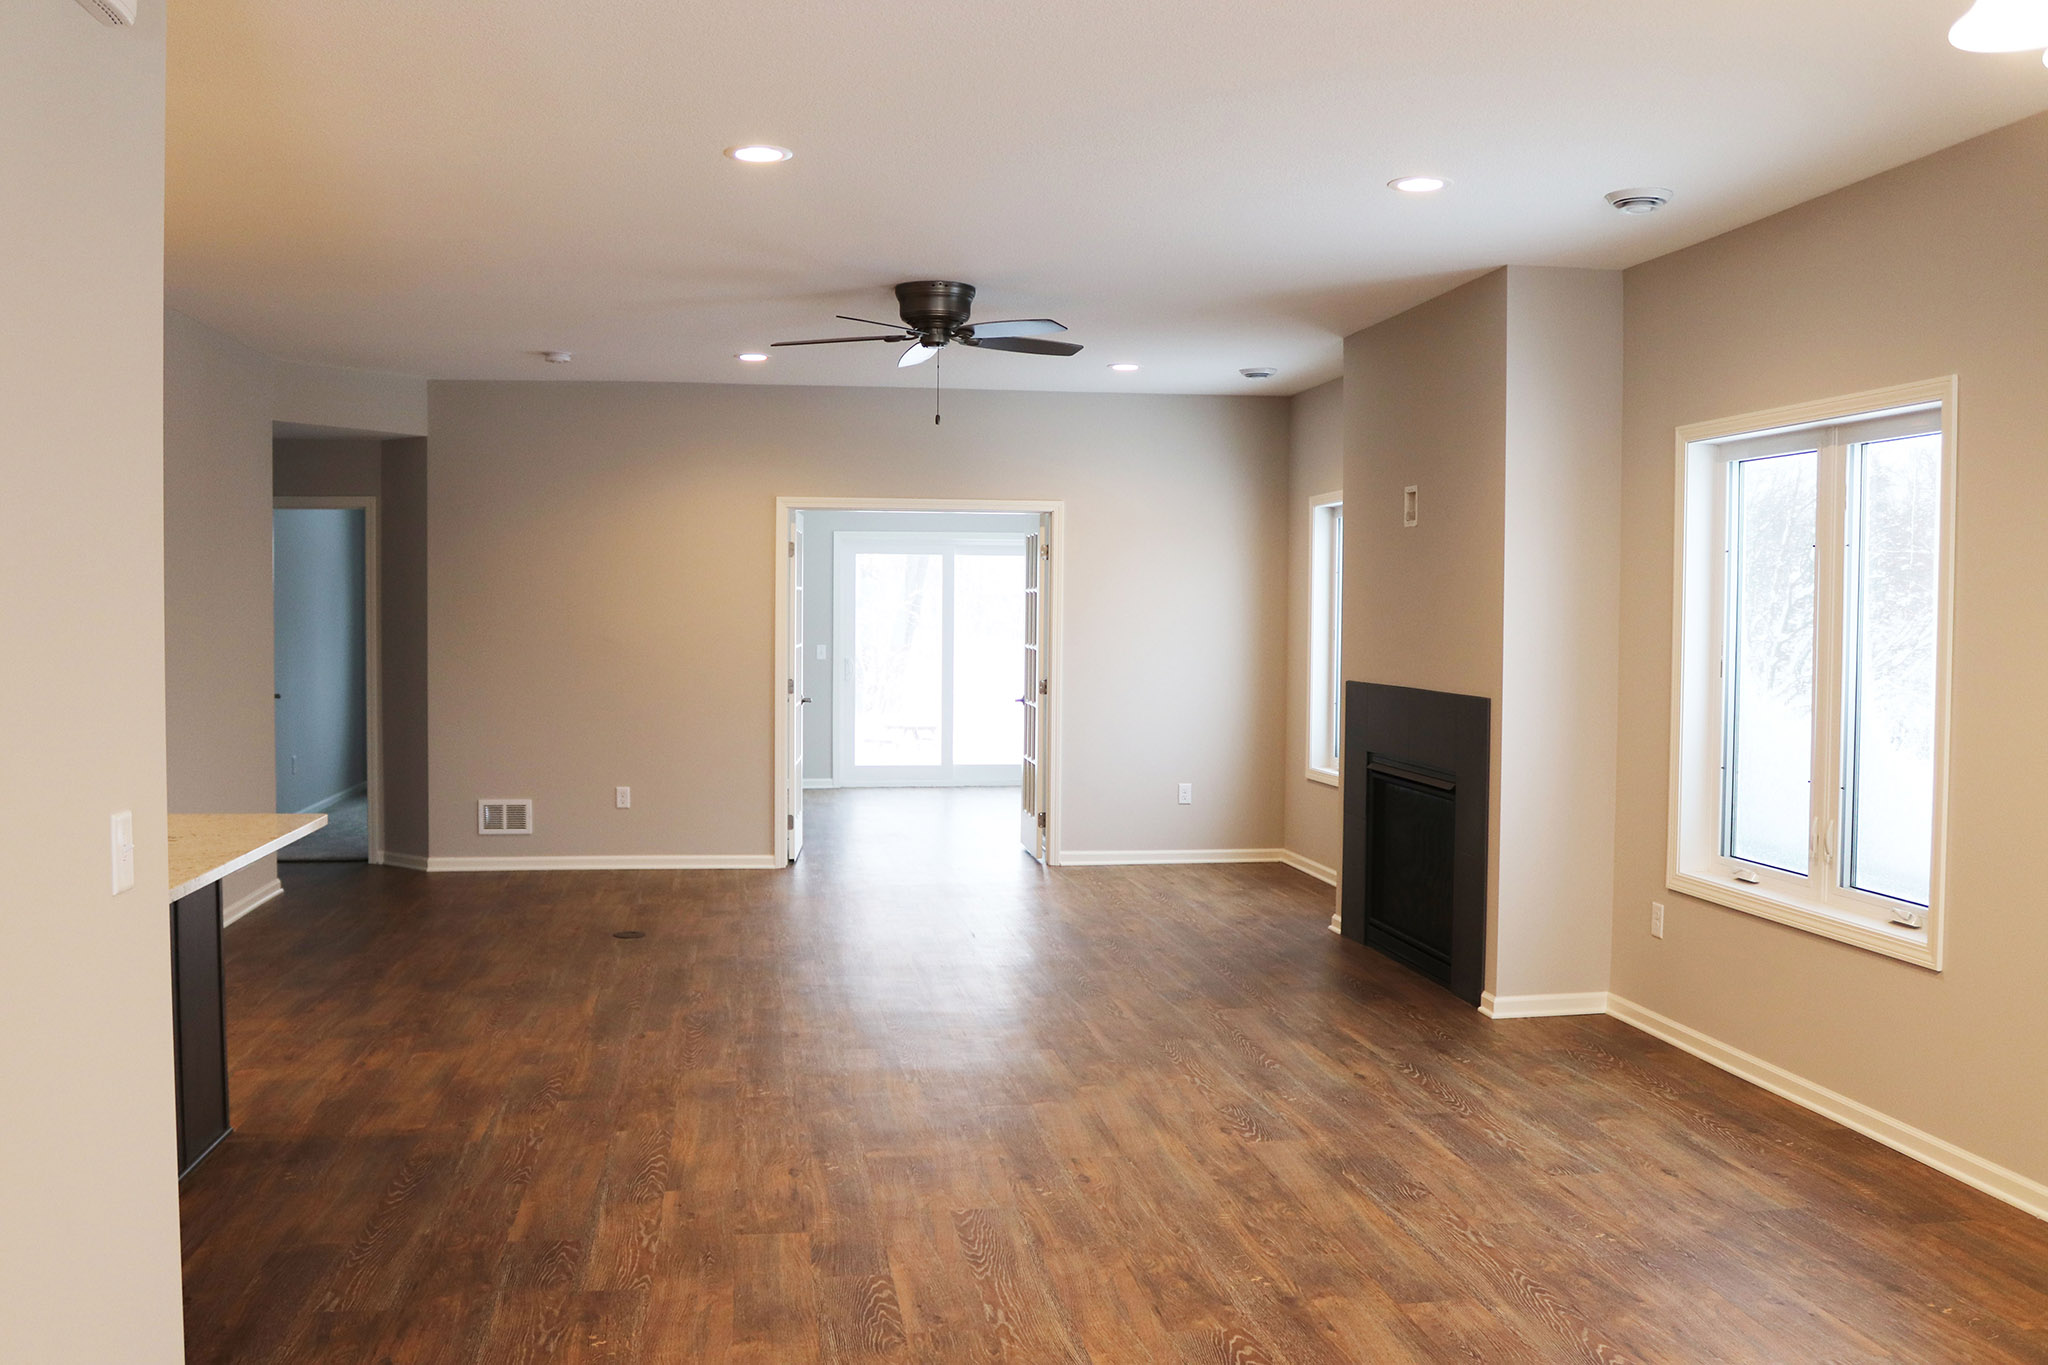 Living room with fireplace and wood floors